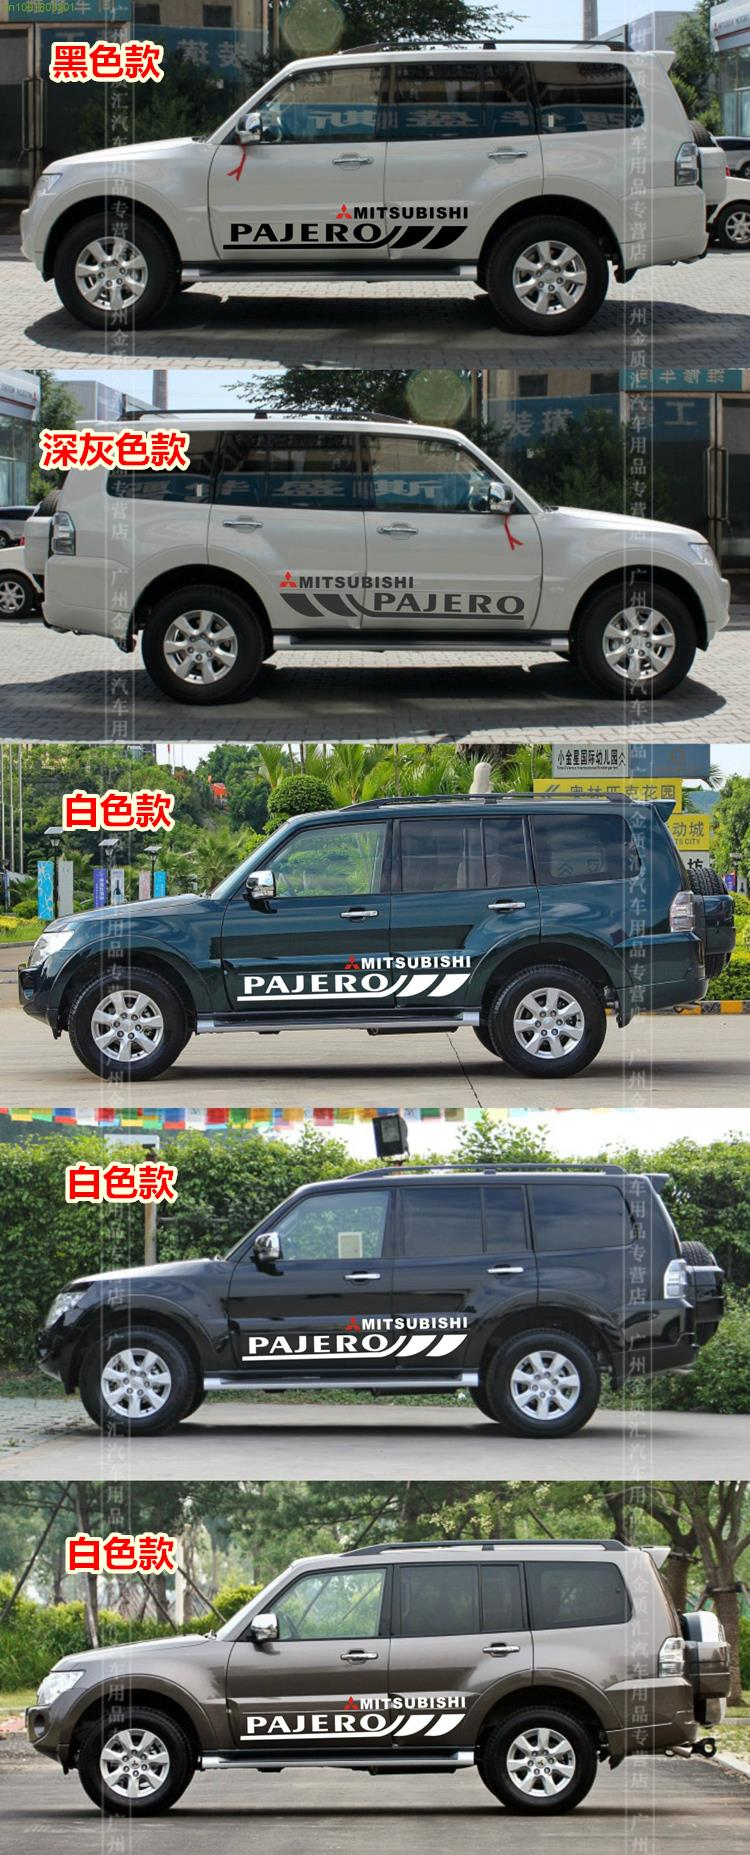 Fashion car body refit decor vinyl sticker for mitsubishi pajerodiy modified car styling stickers